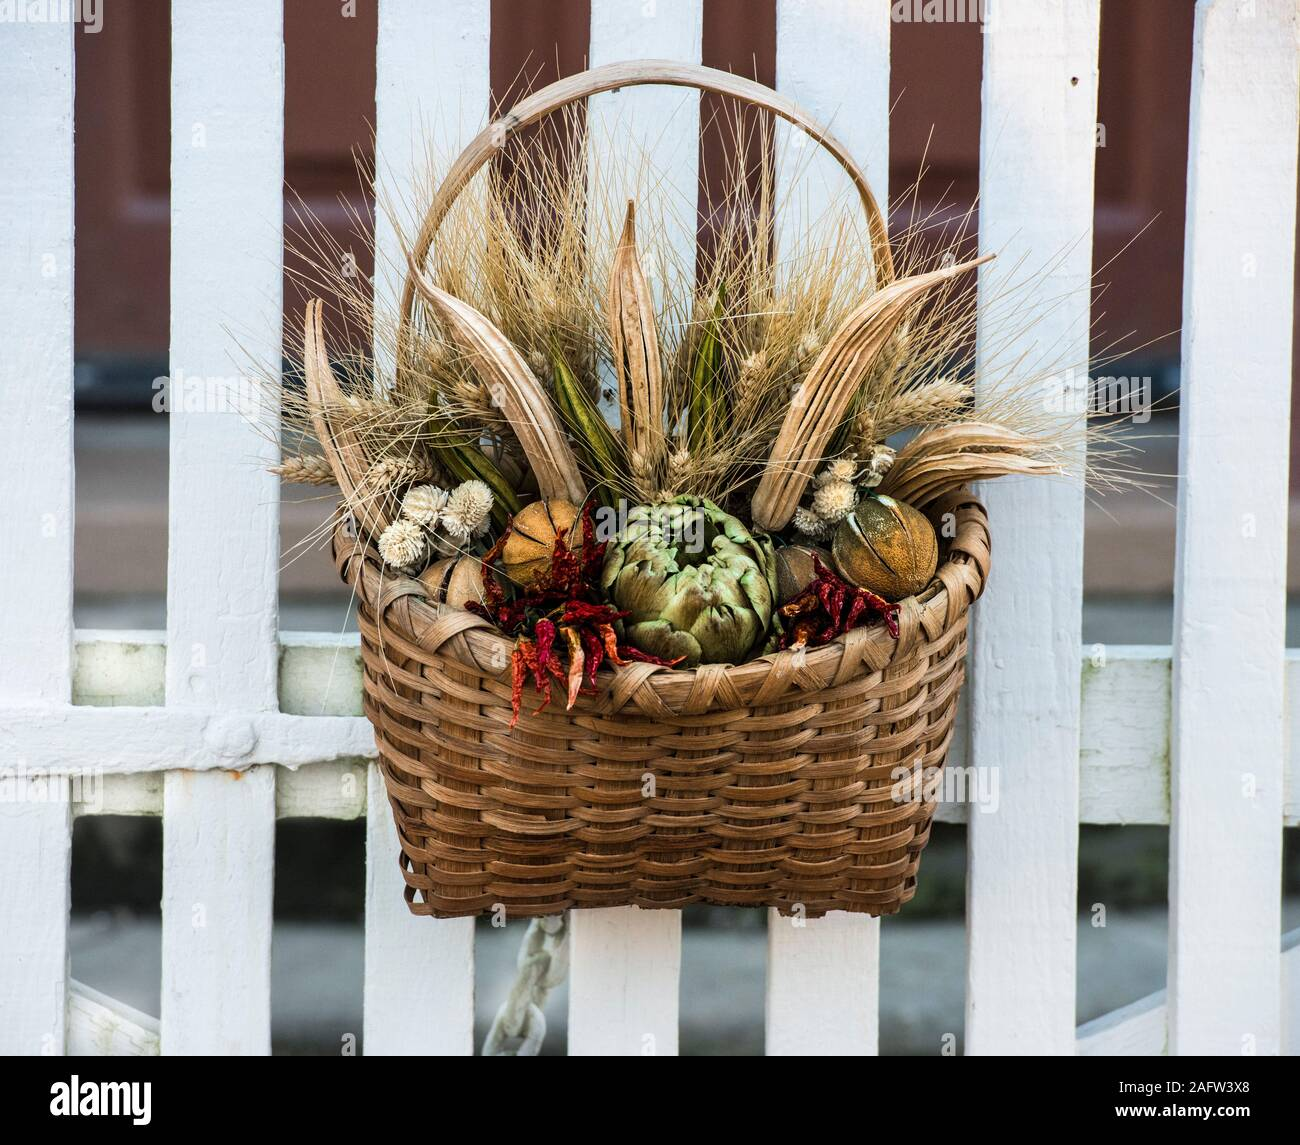 Dried flower arrangement in a wicker basket, hanging on a white picket fence gate in Colonial Williamsburg. Deck the Doors annual Wreath competition. Stock Photo